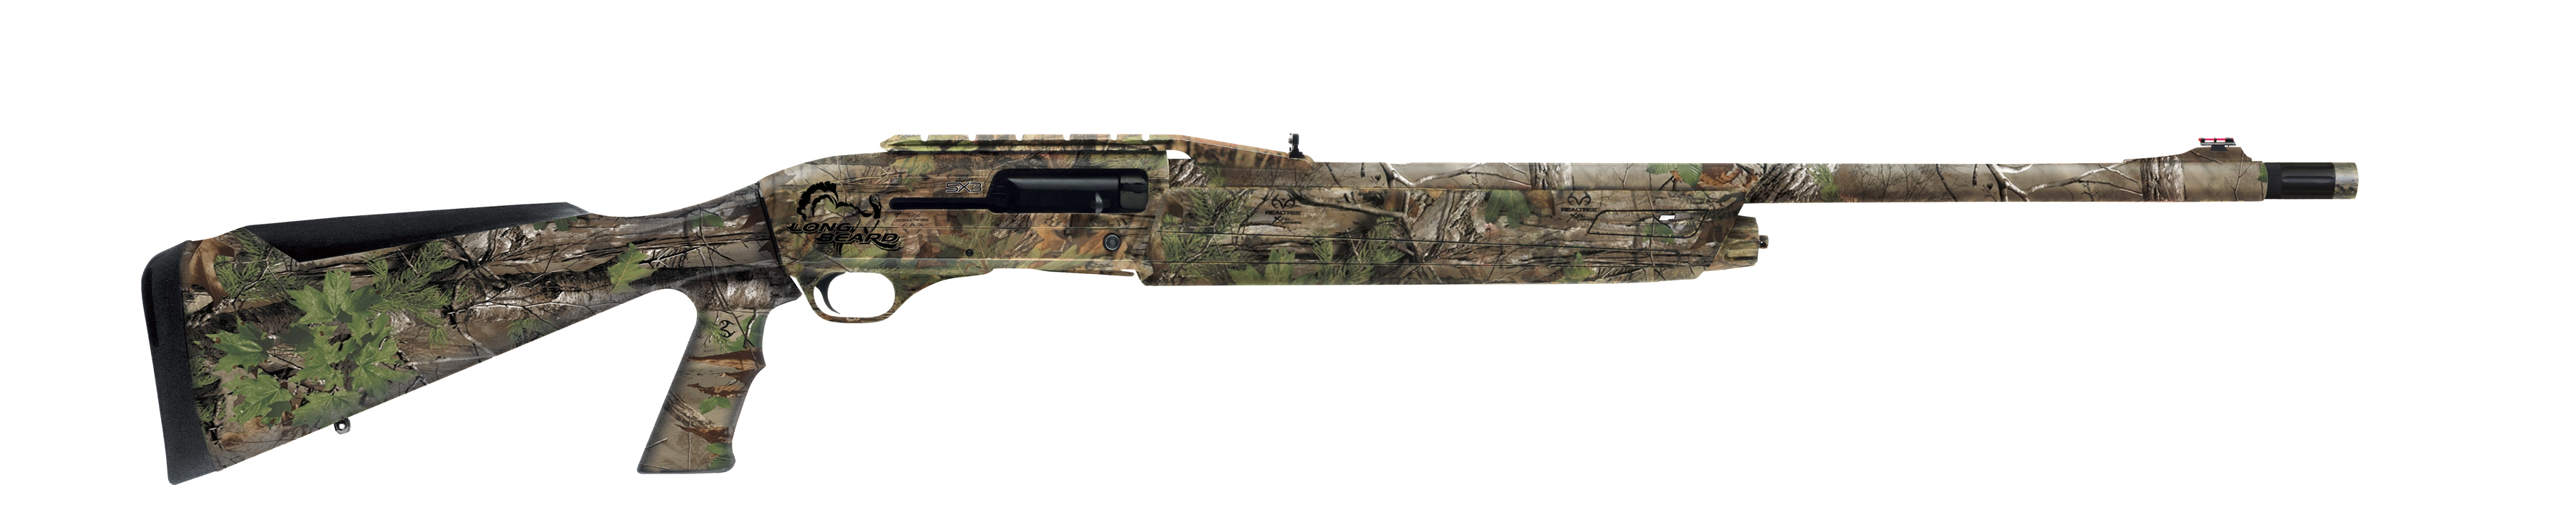 //www.gameandfishmag.com/files/2014-turkey-gear/winchester-sx3-long-beard.jpg